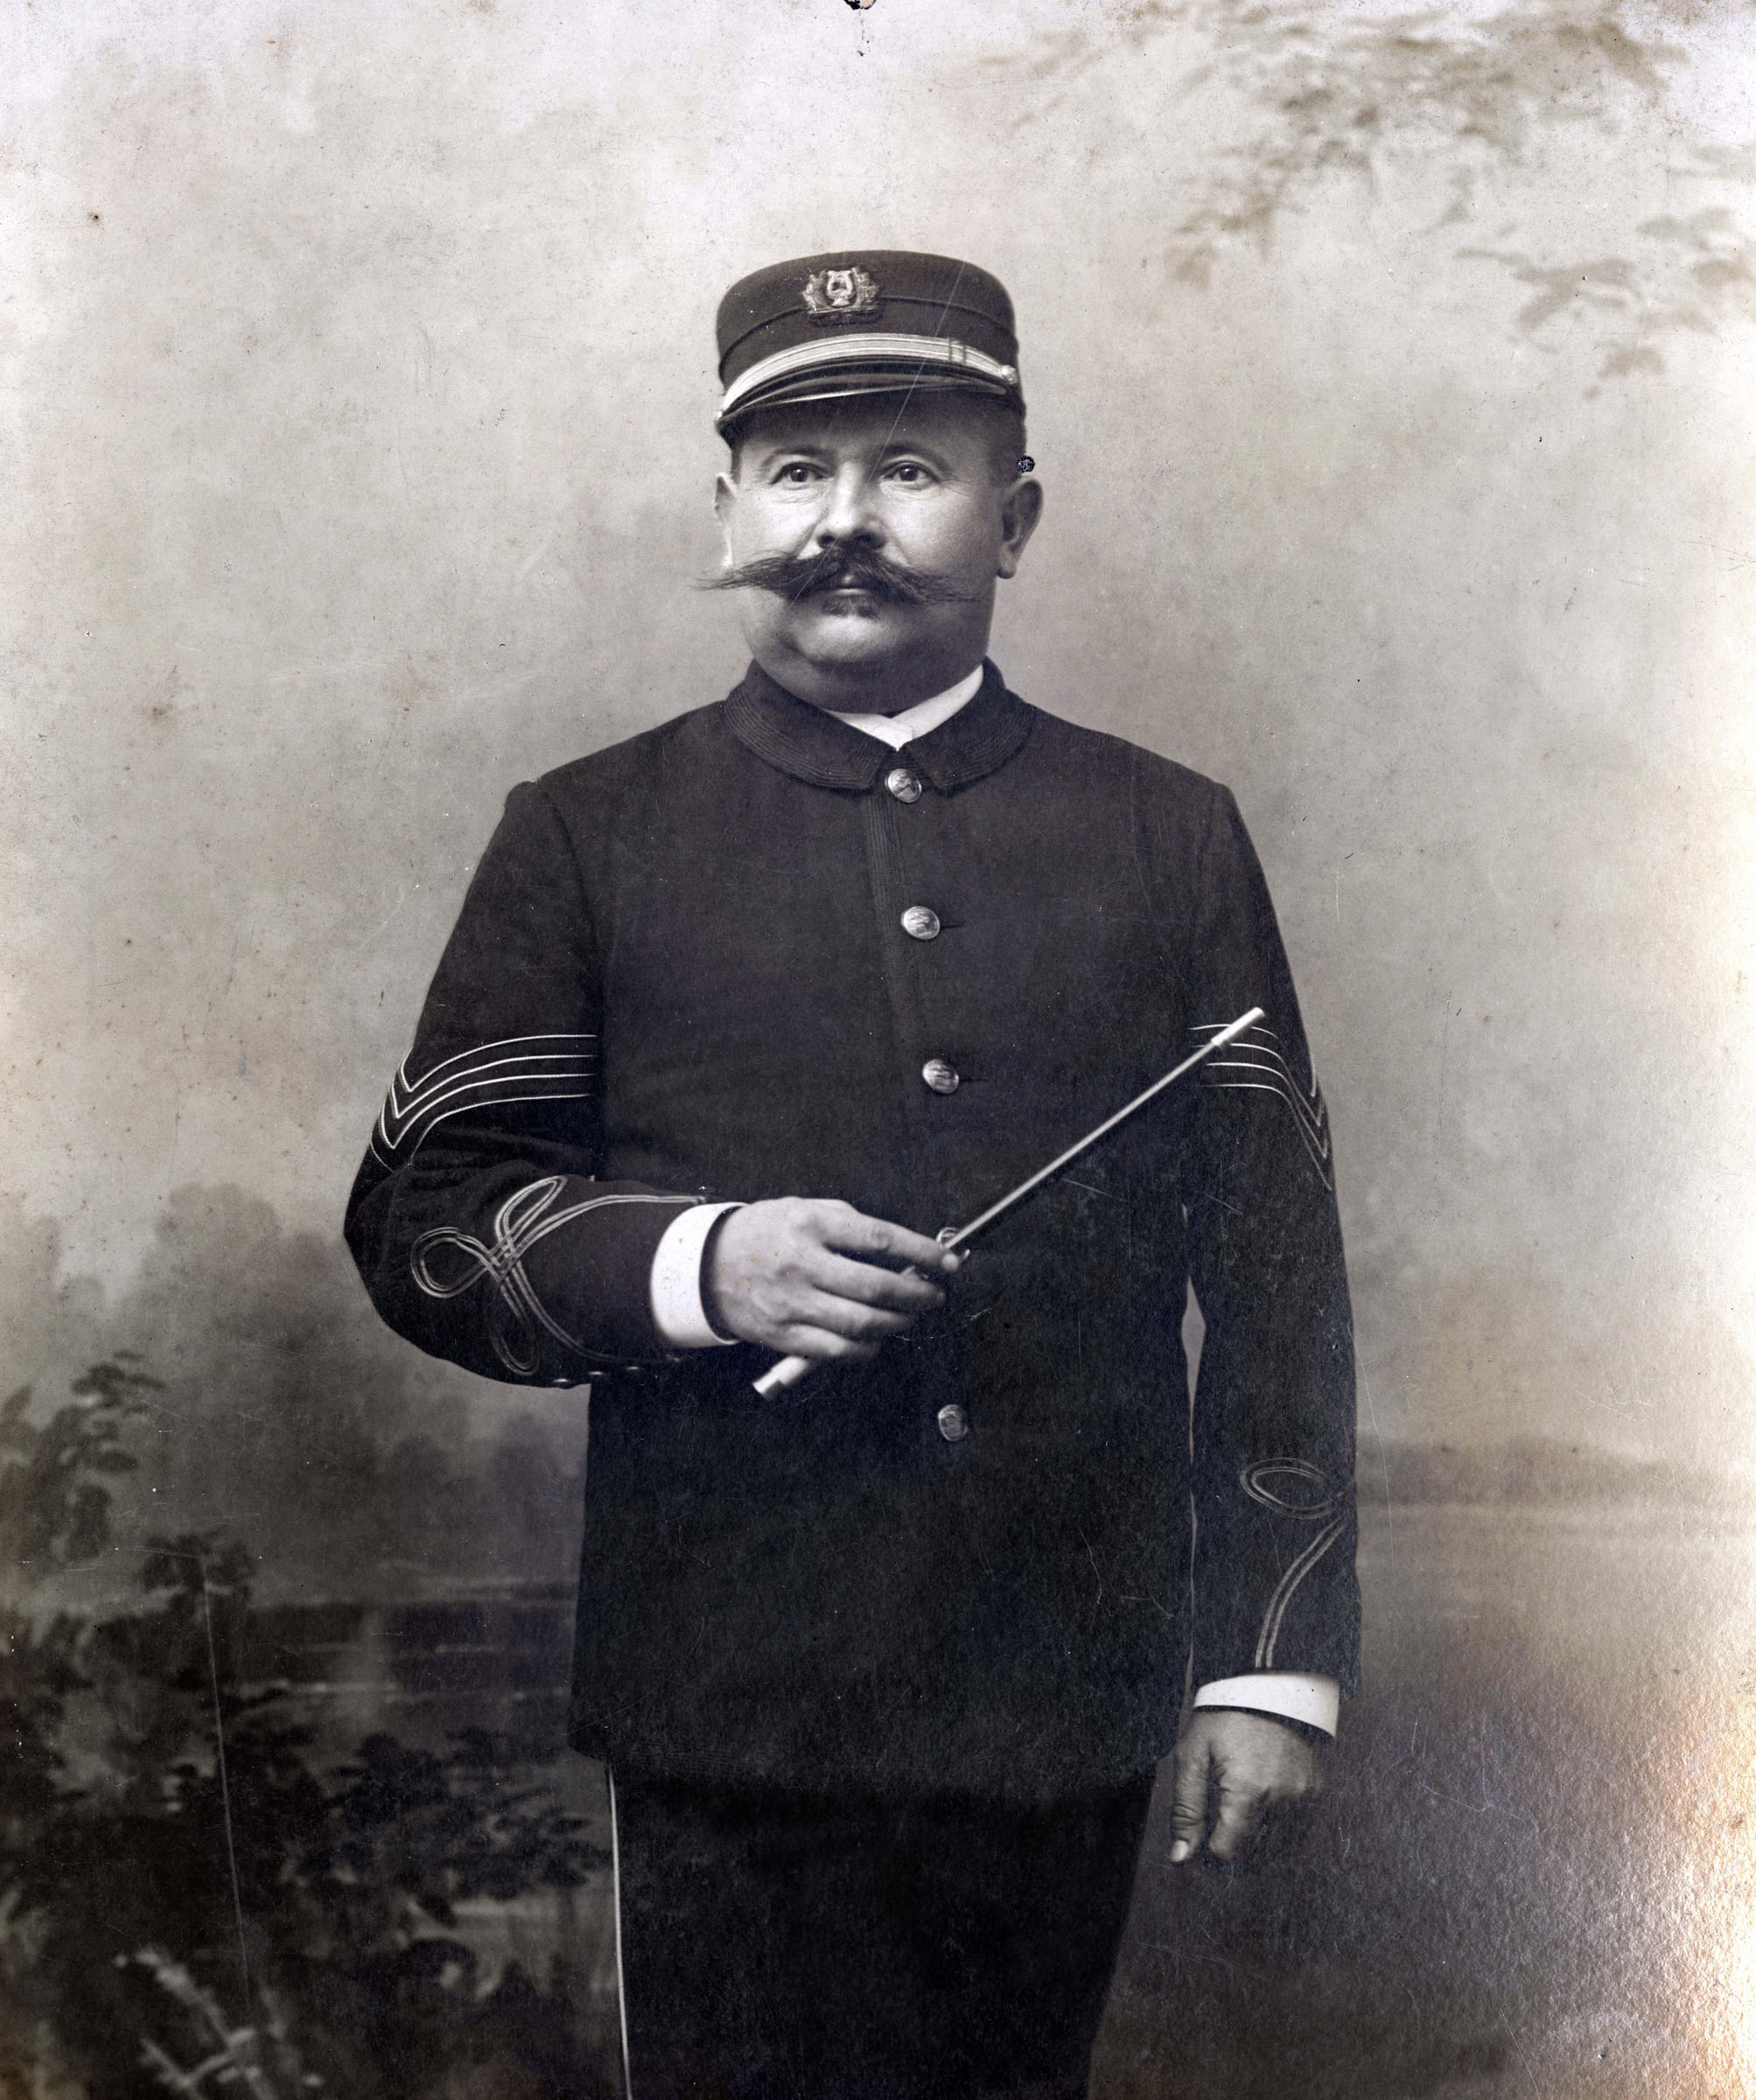 Kamper in uniform with baton